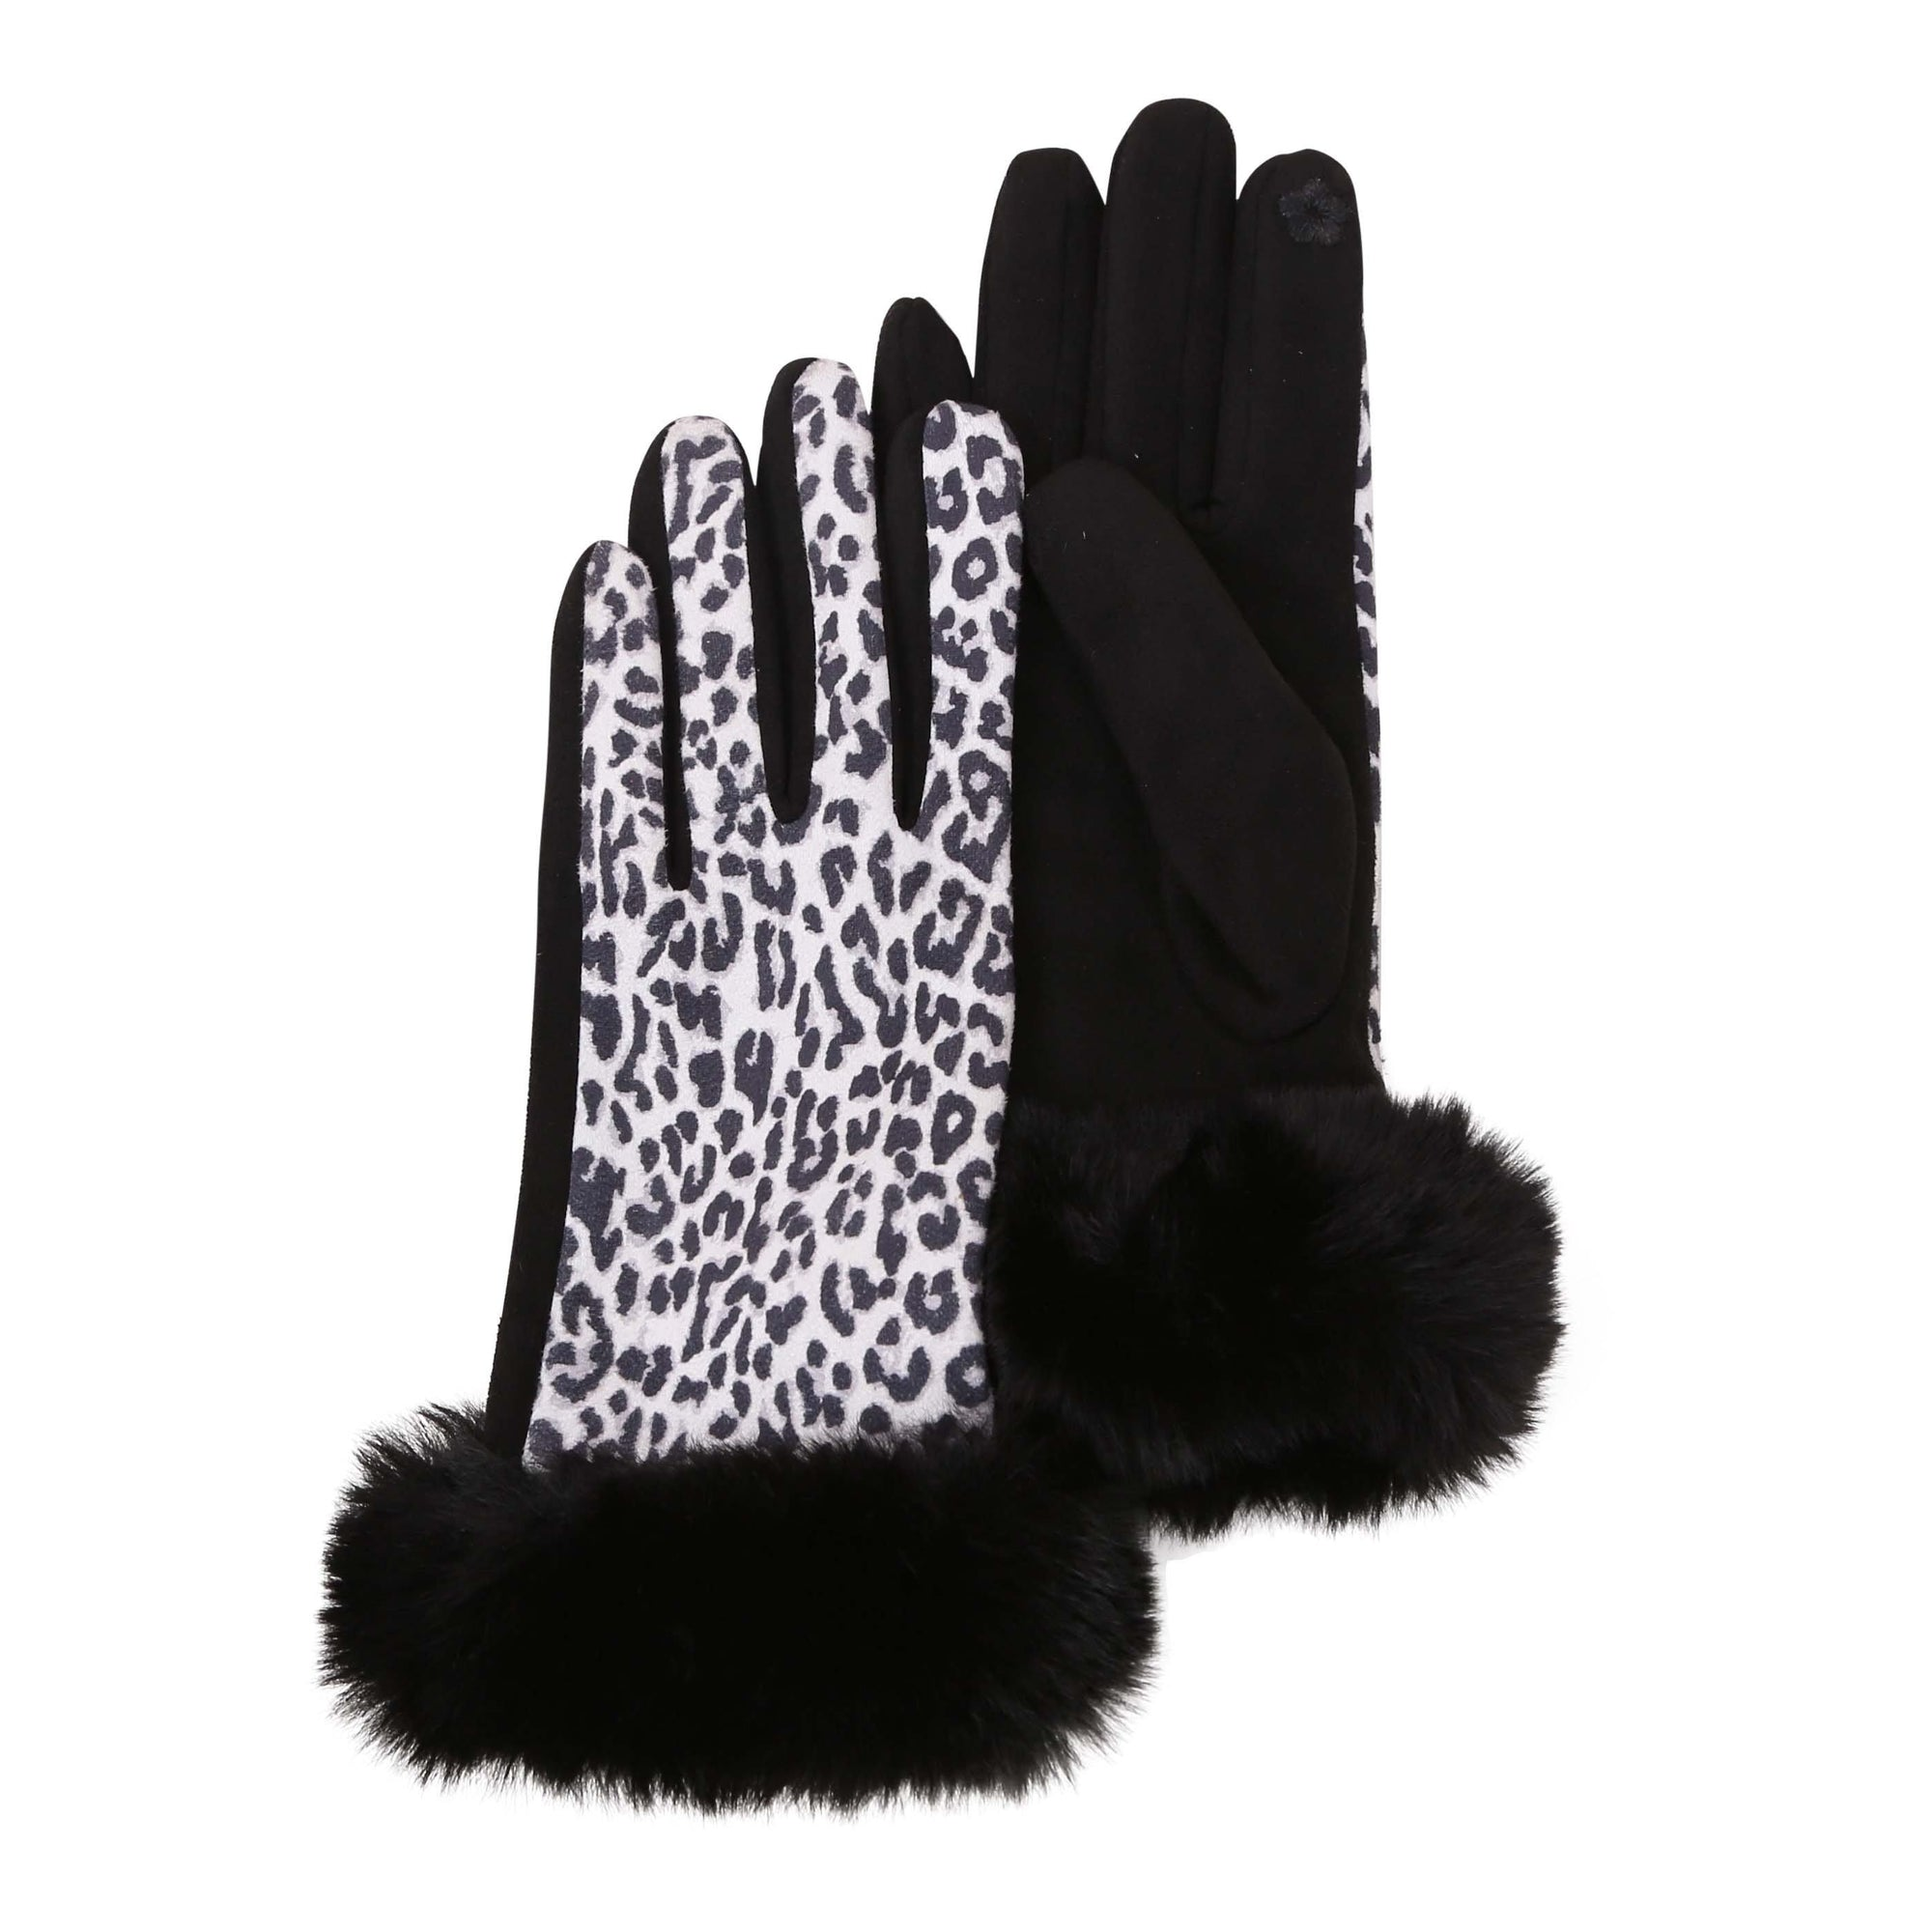 Pair of black and white animal print texting gloves with black fake fur cuffs